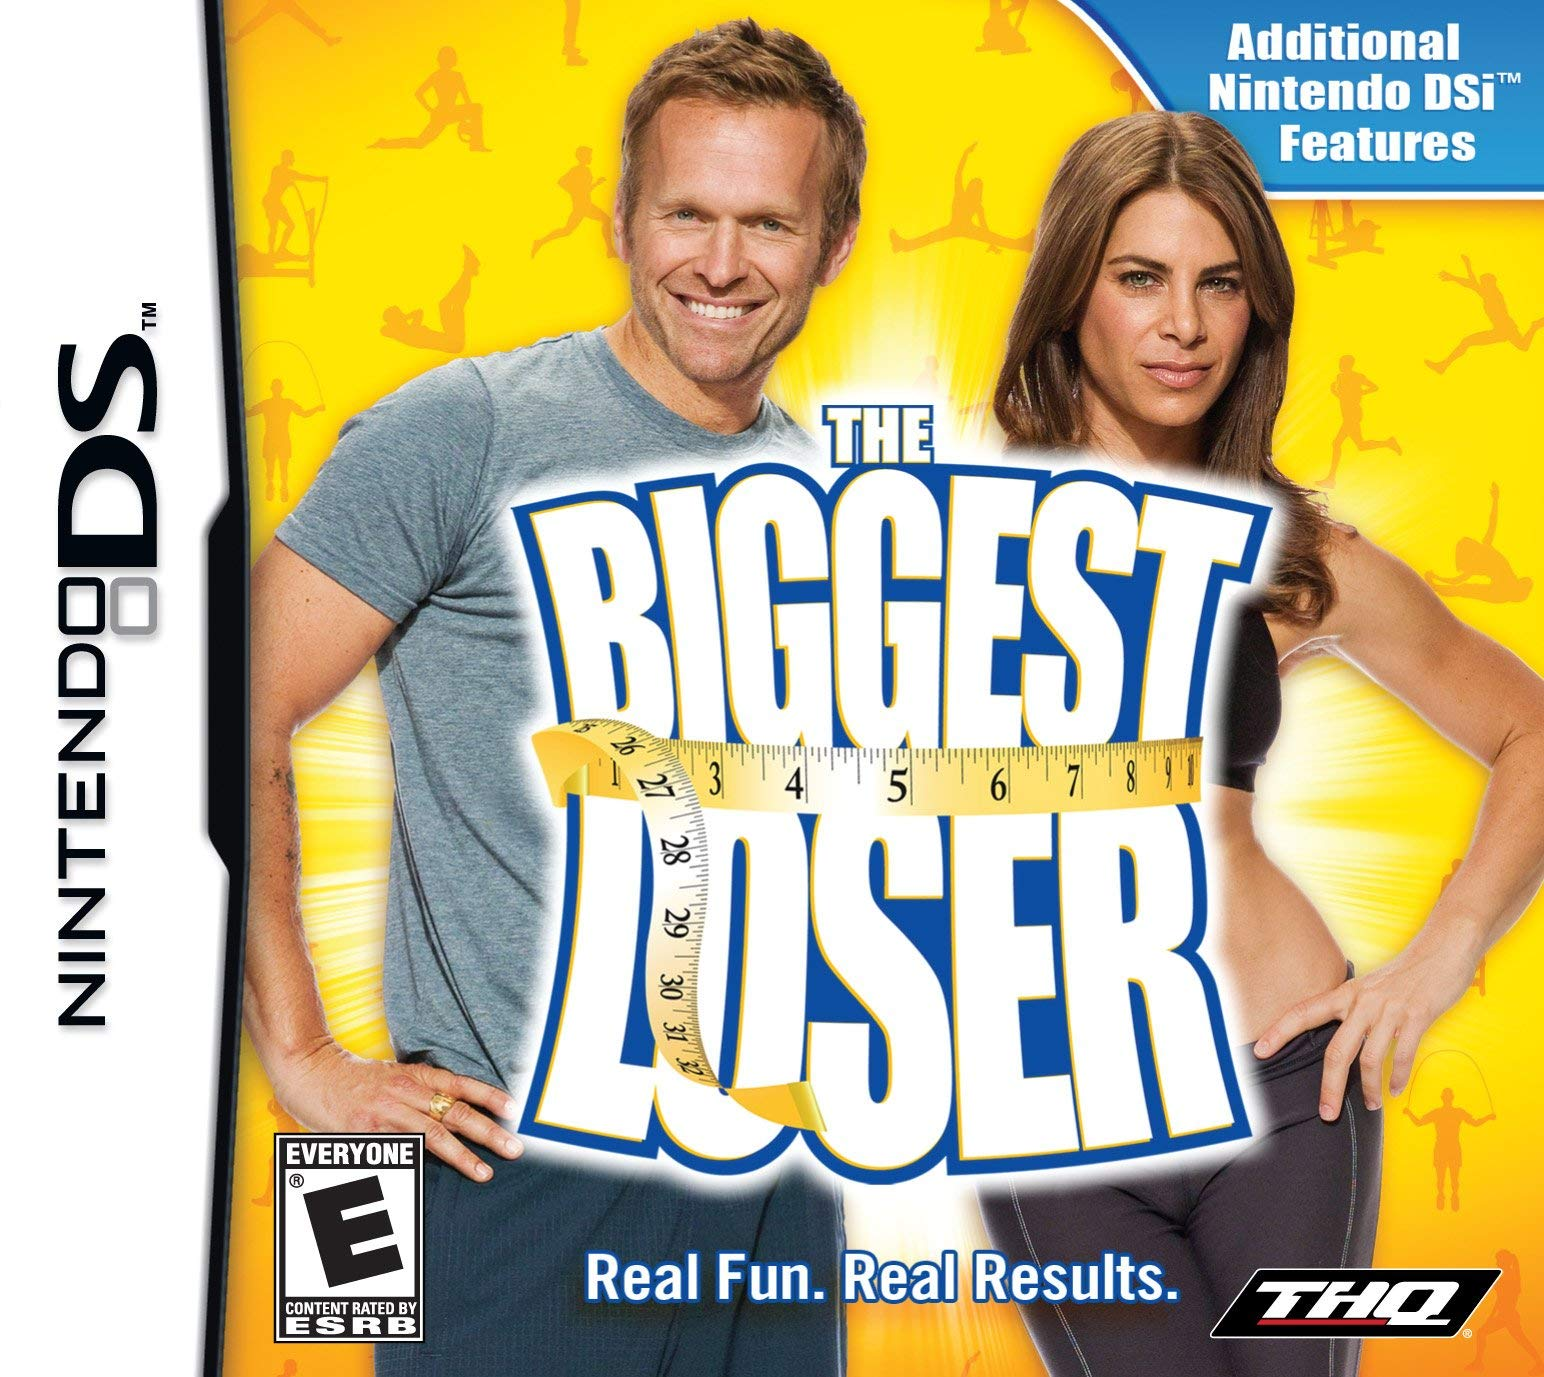 Biggest Loser - Nintendo DS (Certified Refurbished) by THQ (Image #1)